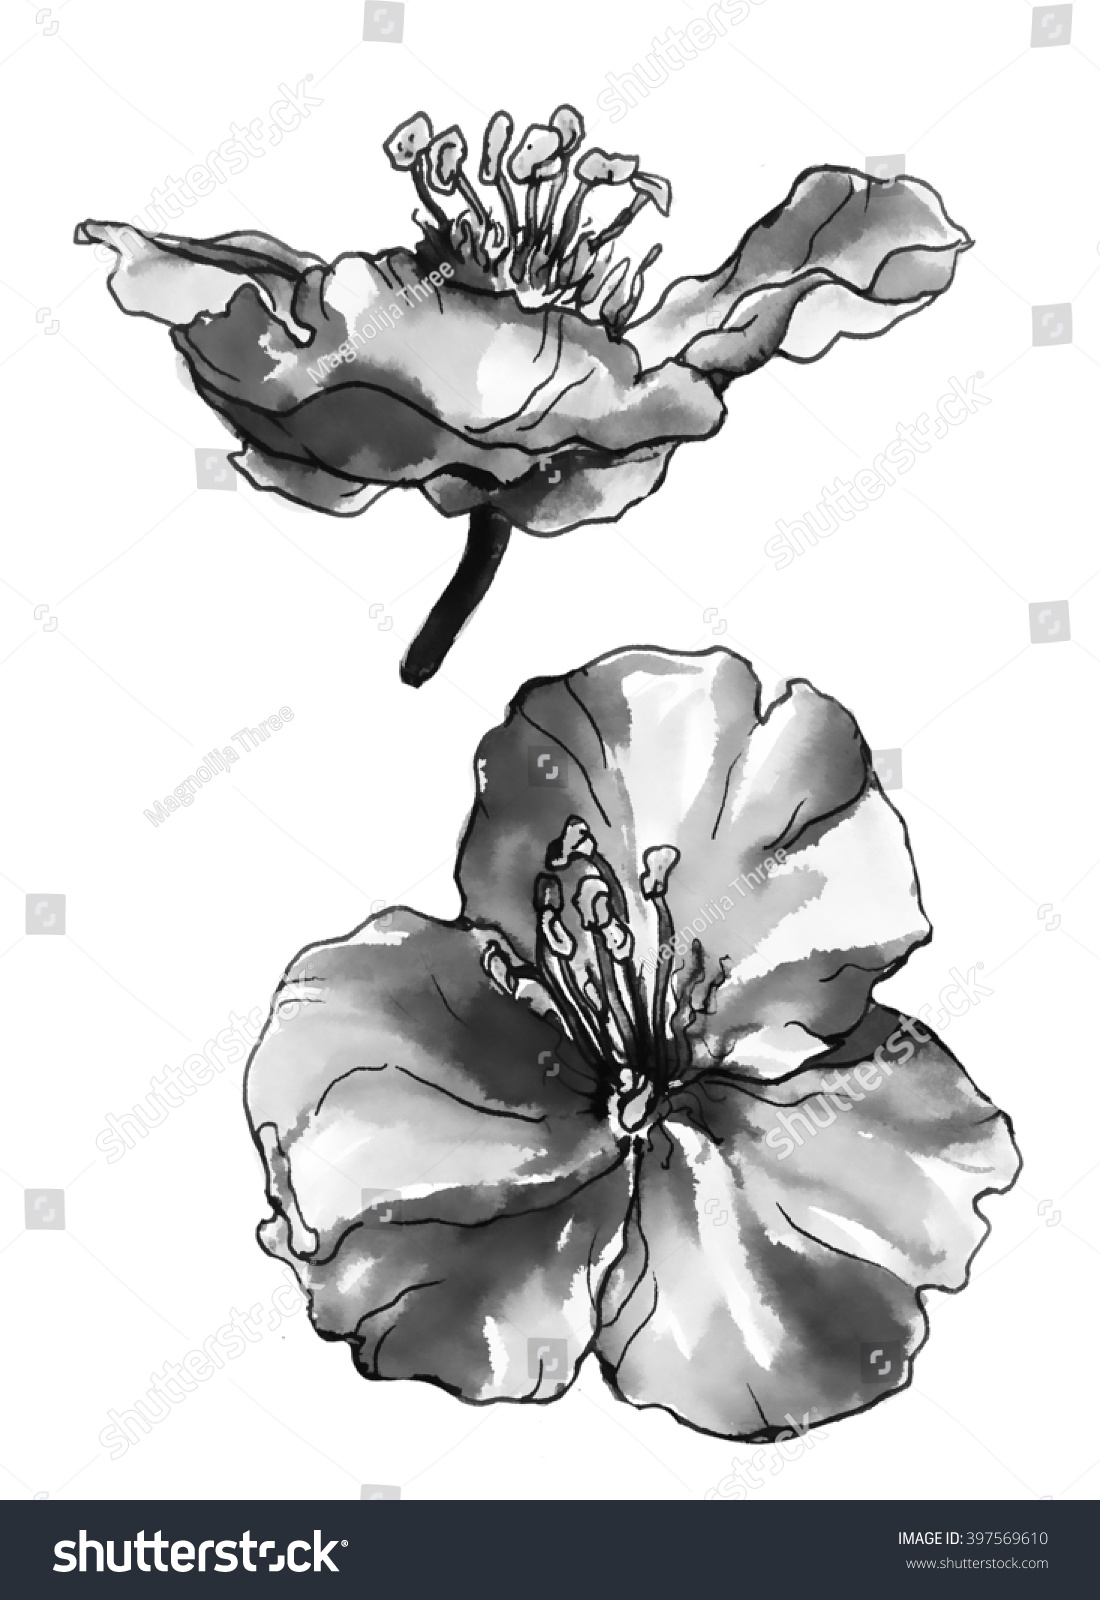 Aquilegia grannys connet columbine tropical flower stock aquilegia grannys connet or columbine tropical flower isolated on white background hand drawn izmirmasajfo Image collections